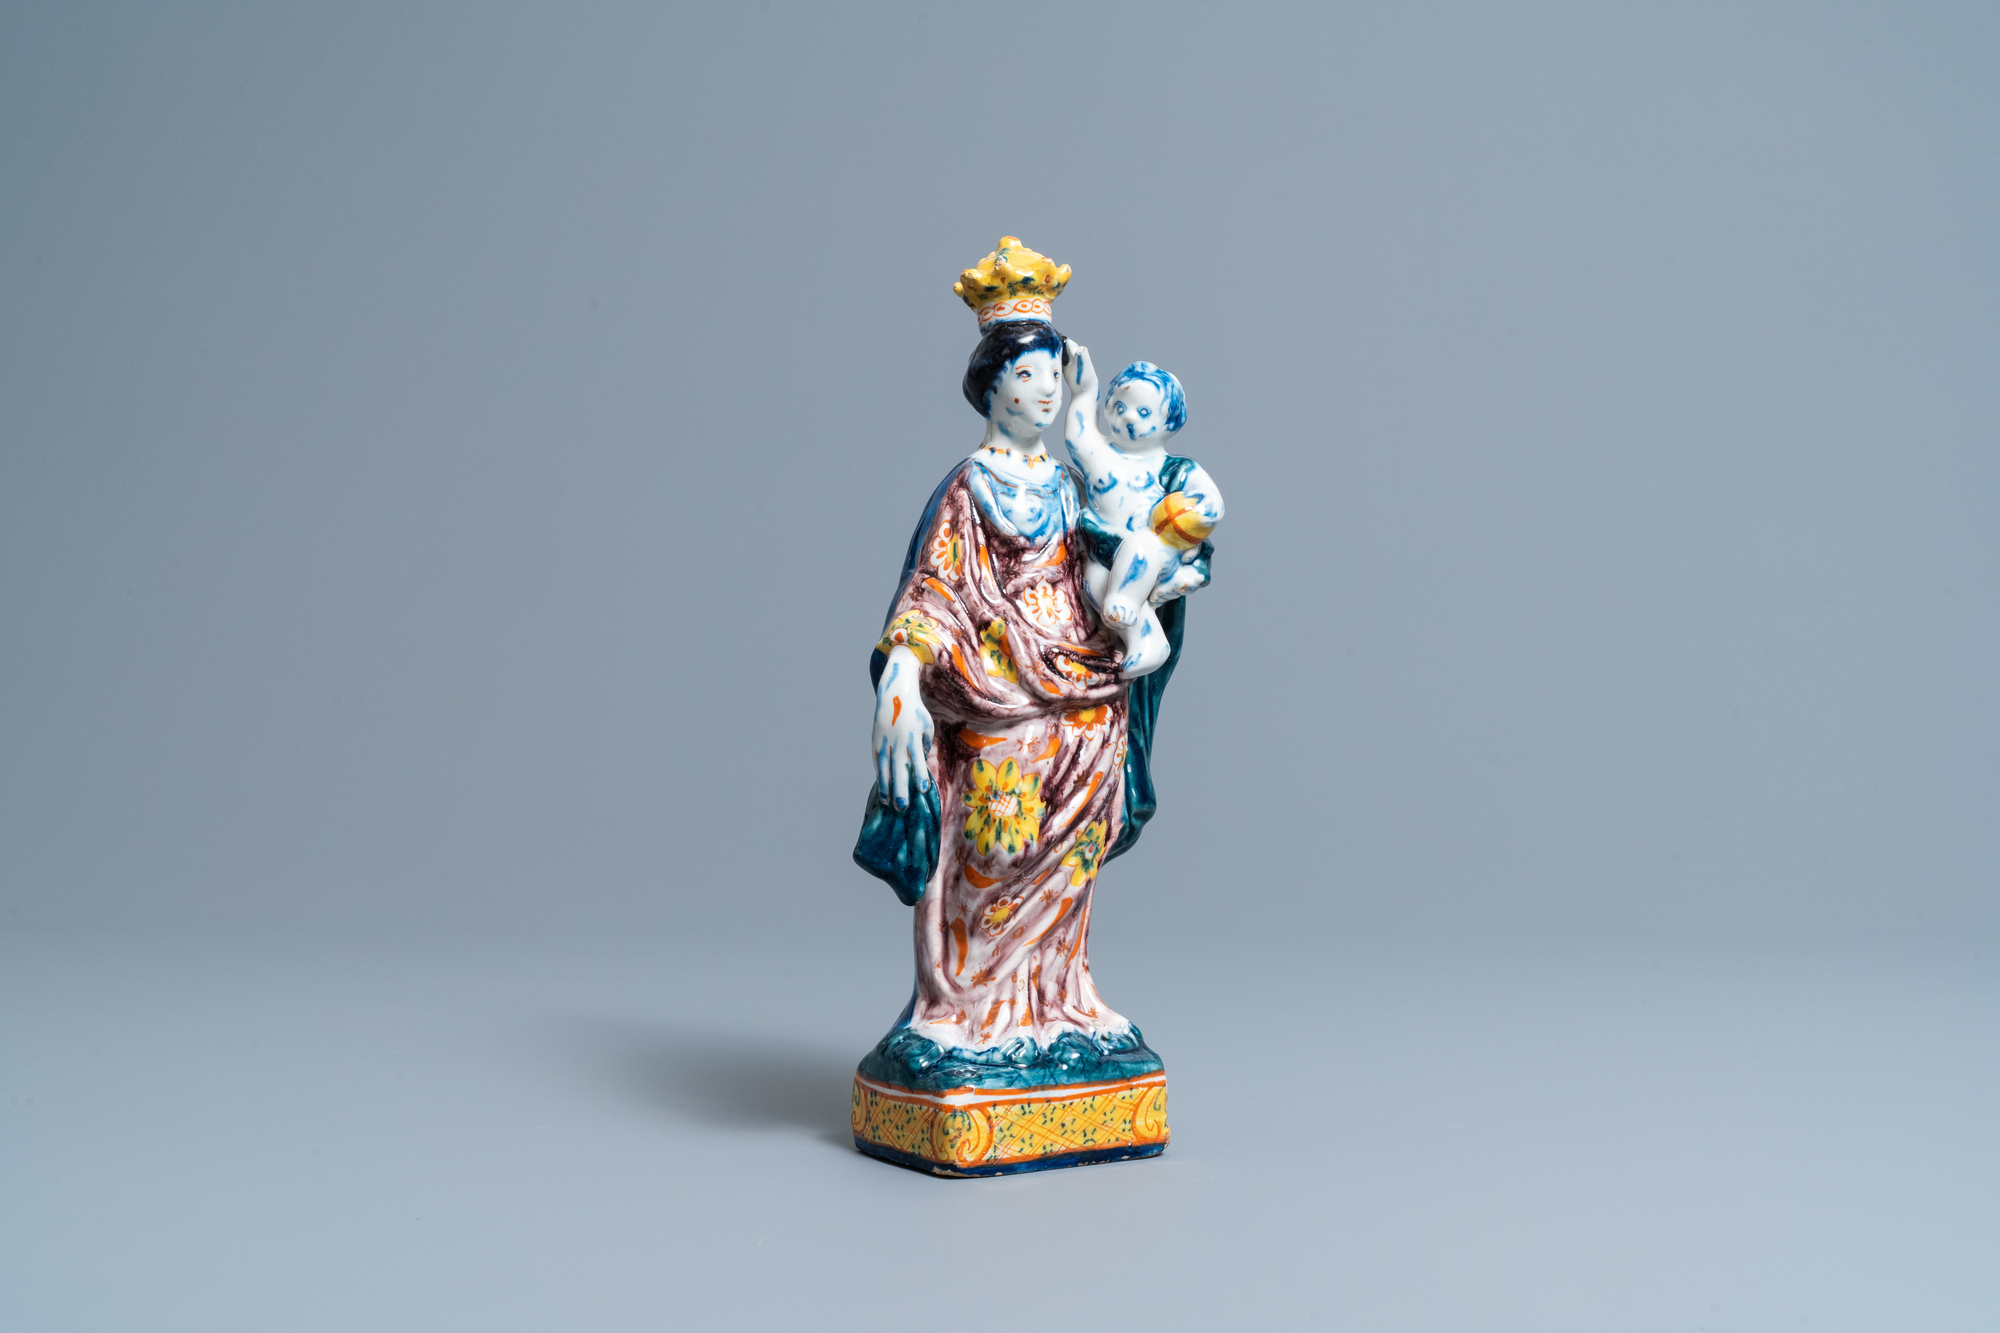 A polychrome Dutch Delft figure of the Madonna with child, 18th C.